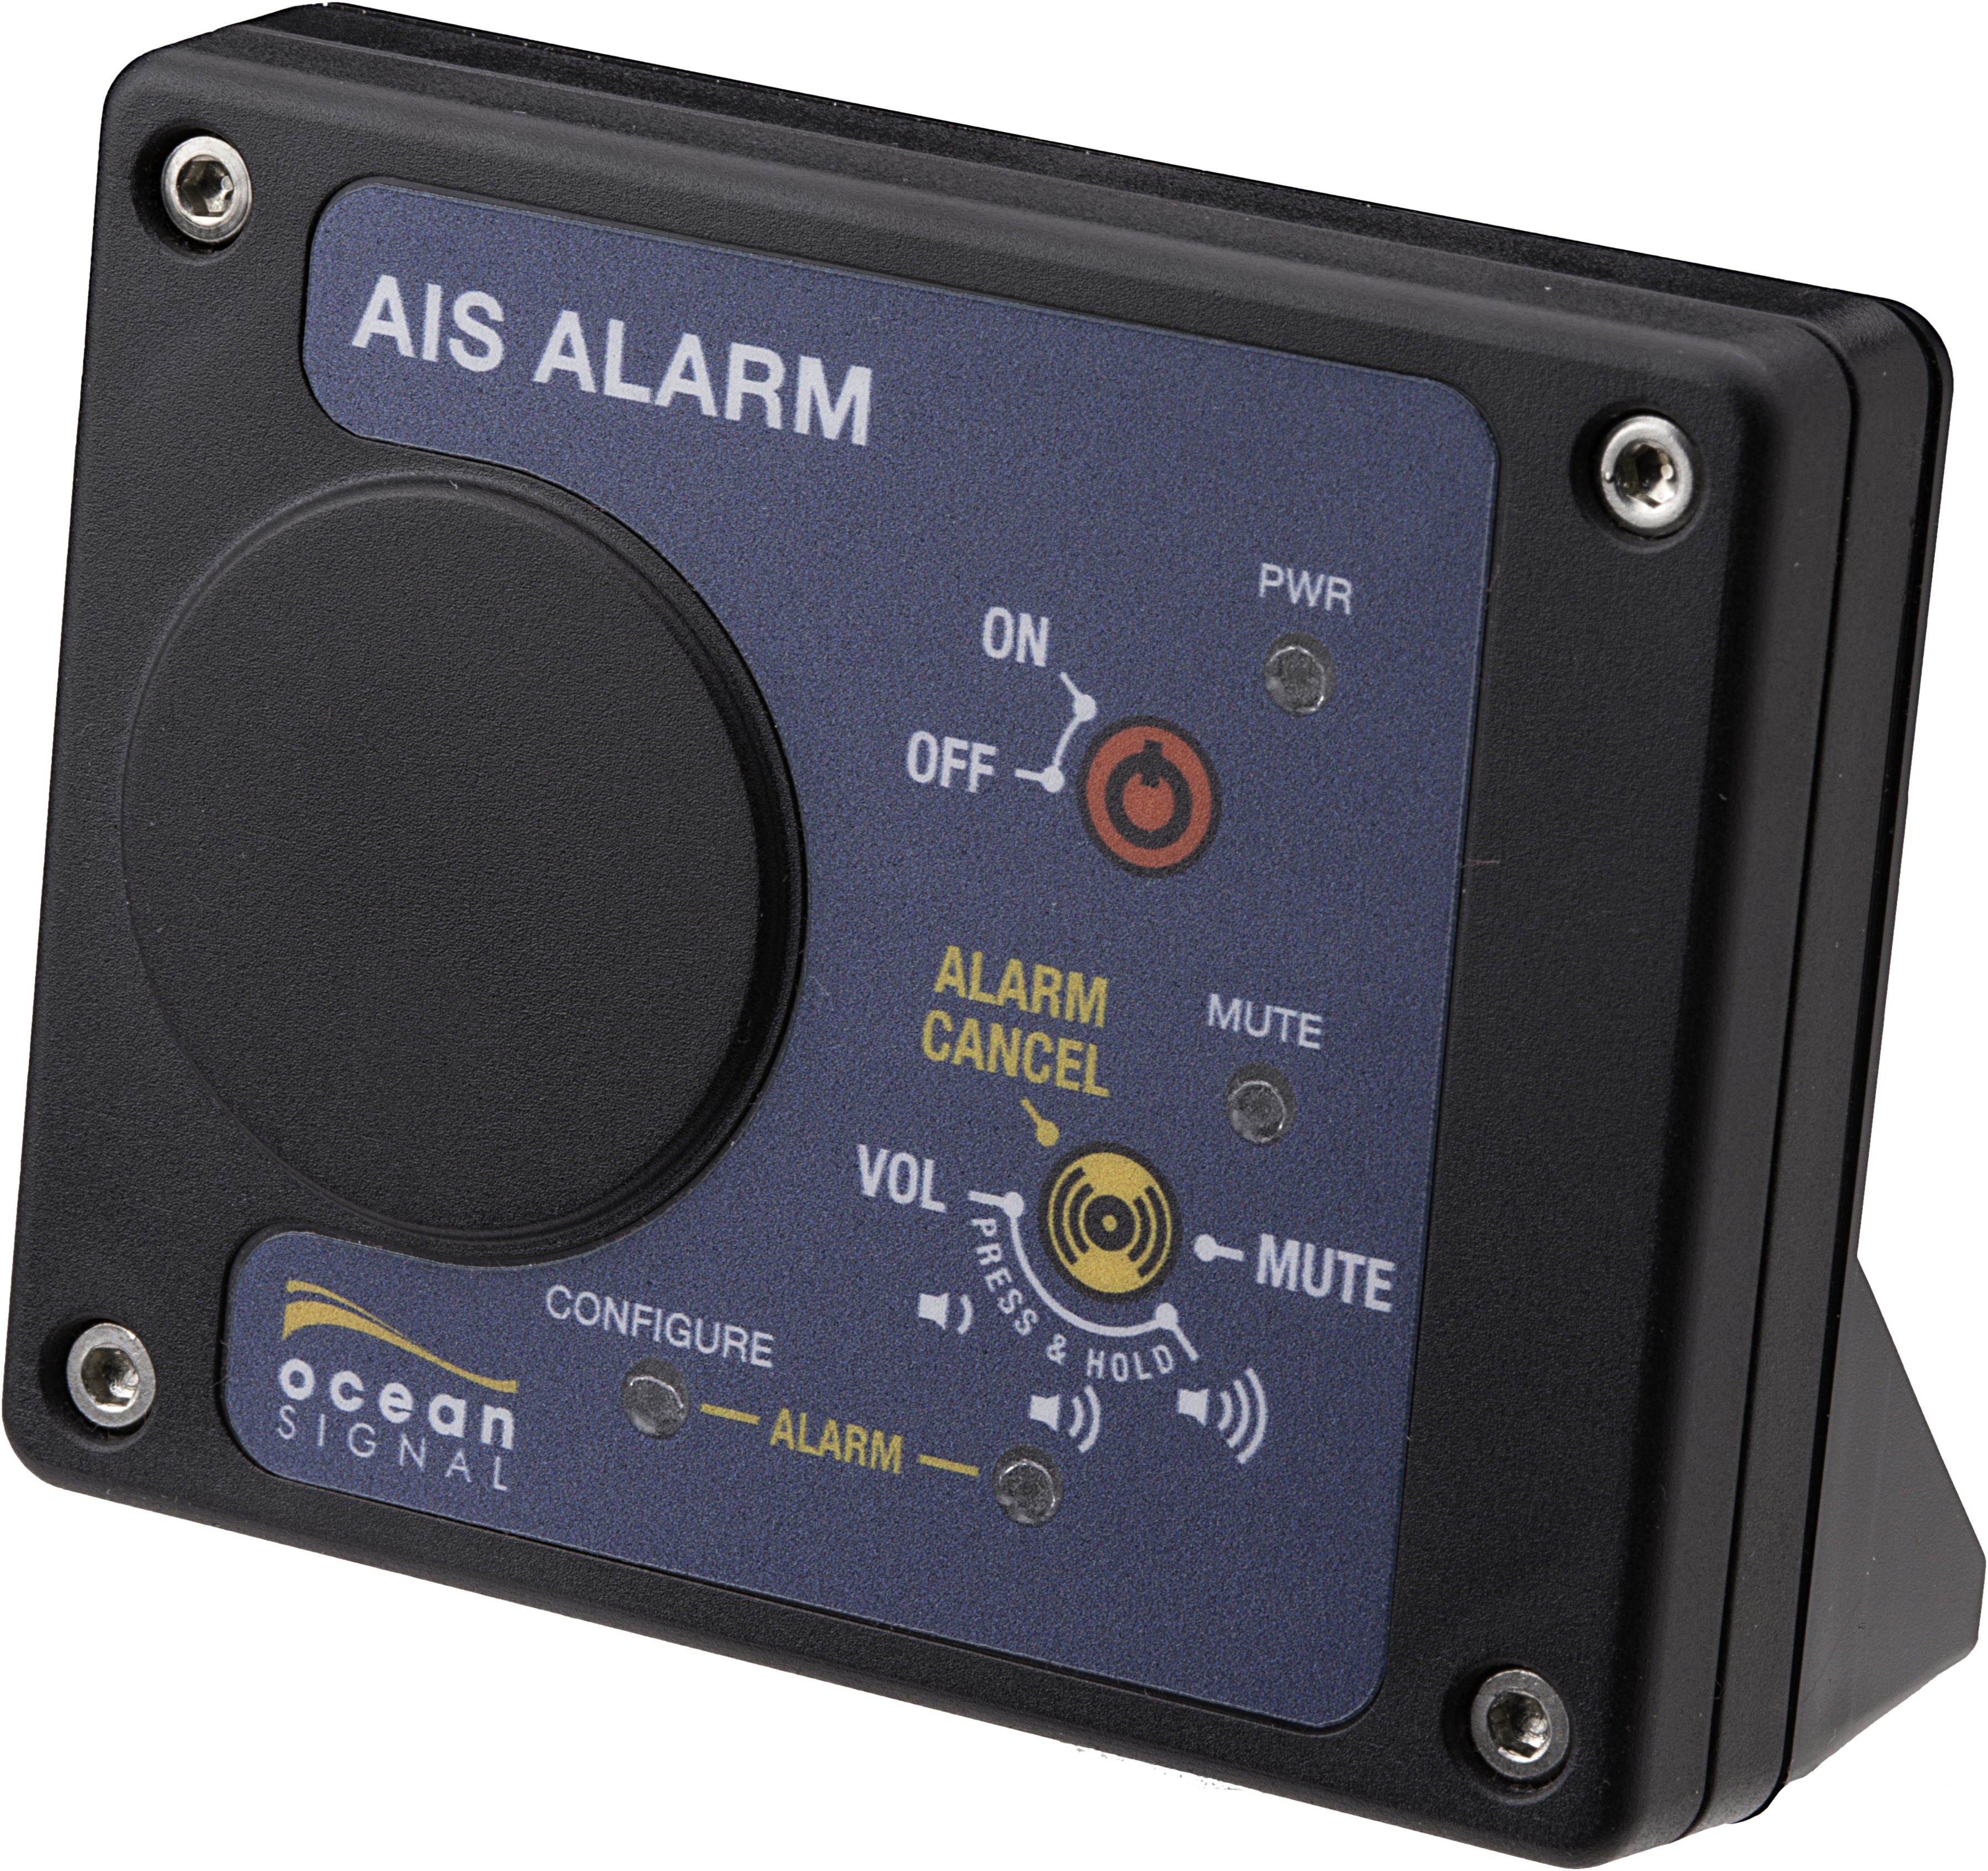 AIS Alarm front angled